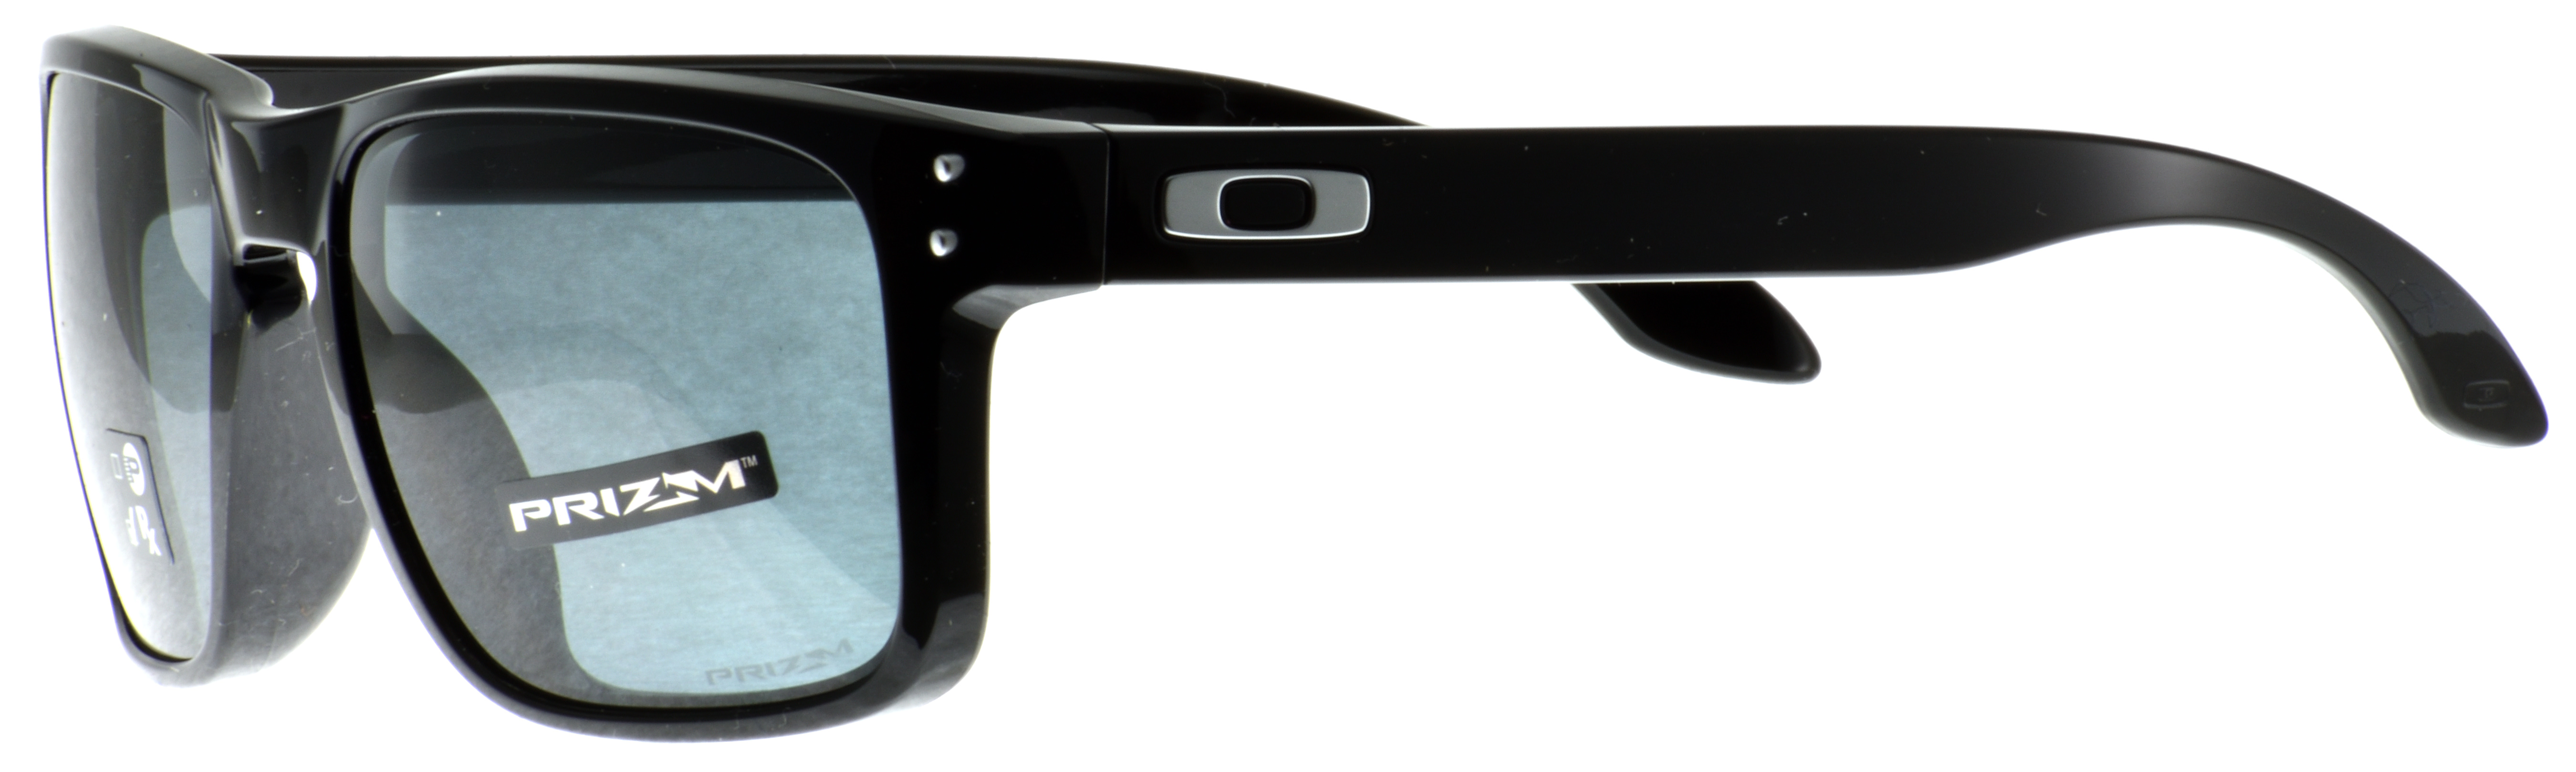 OAKLEY HOLBROOK POLISHED BLACK_PRIZM GREY 2090455802_00035